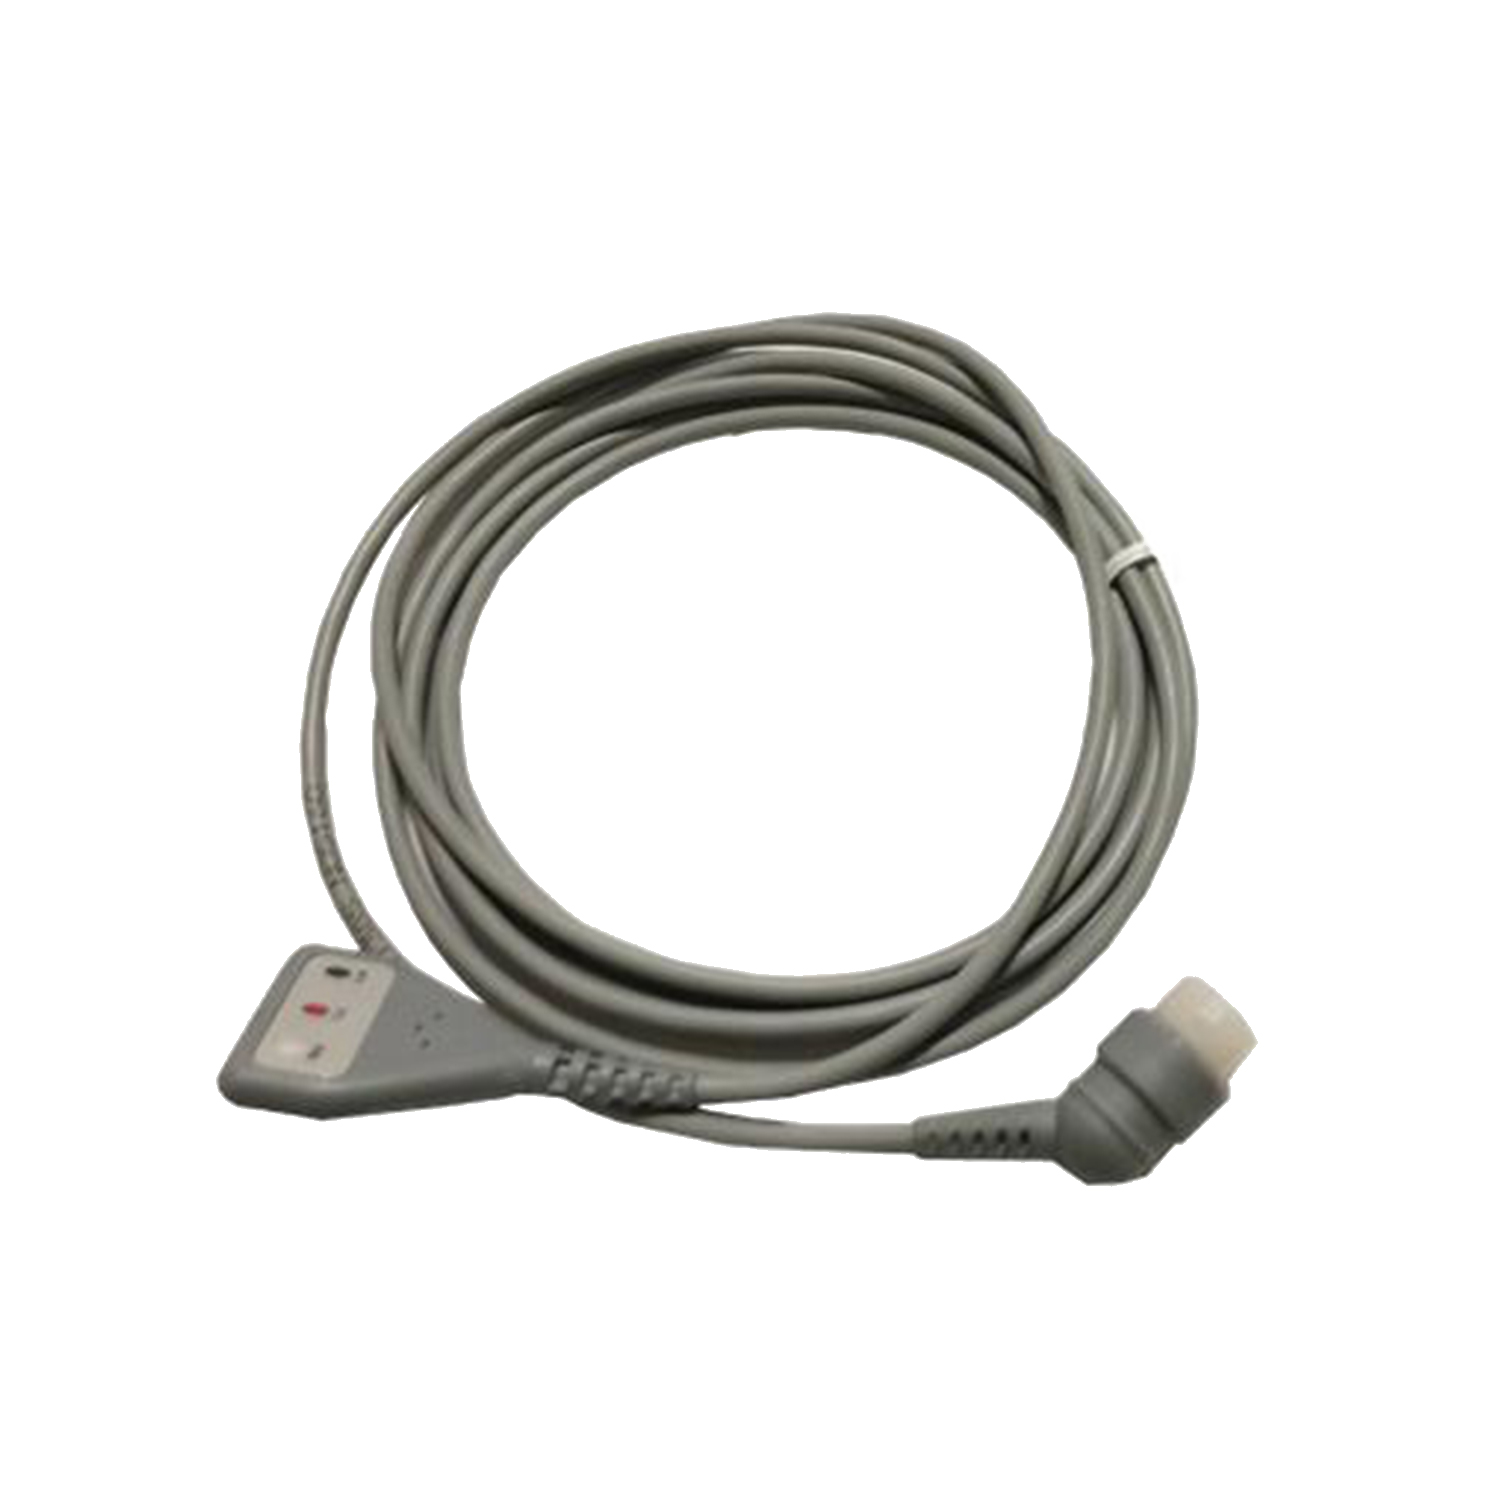 3 Lead 12 Pin ECG Patient Cable